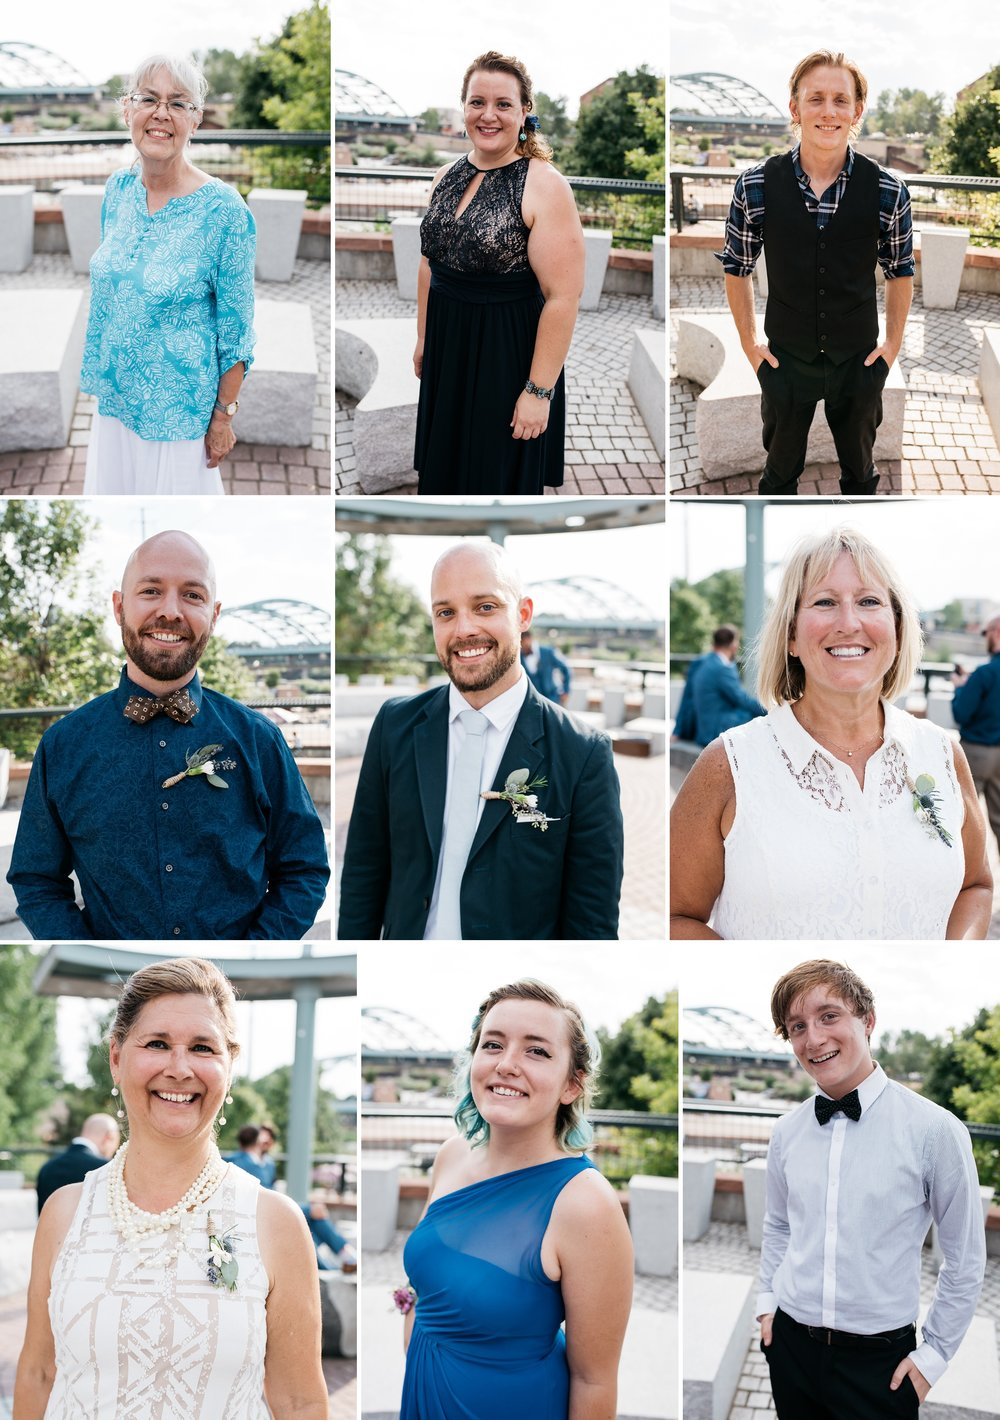 Head shots of the bridal party at a wedding at Confluence Park in Denver, Colorado. Wedding photography by Sonja Salzburg of Sonja K Photography.